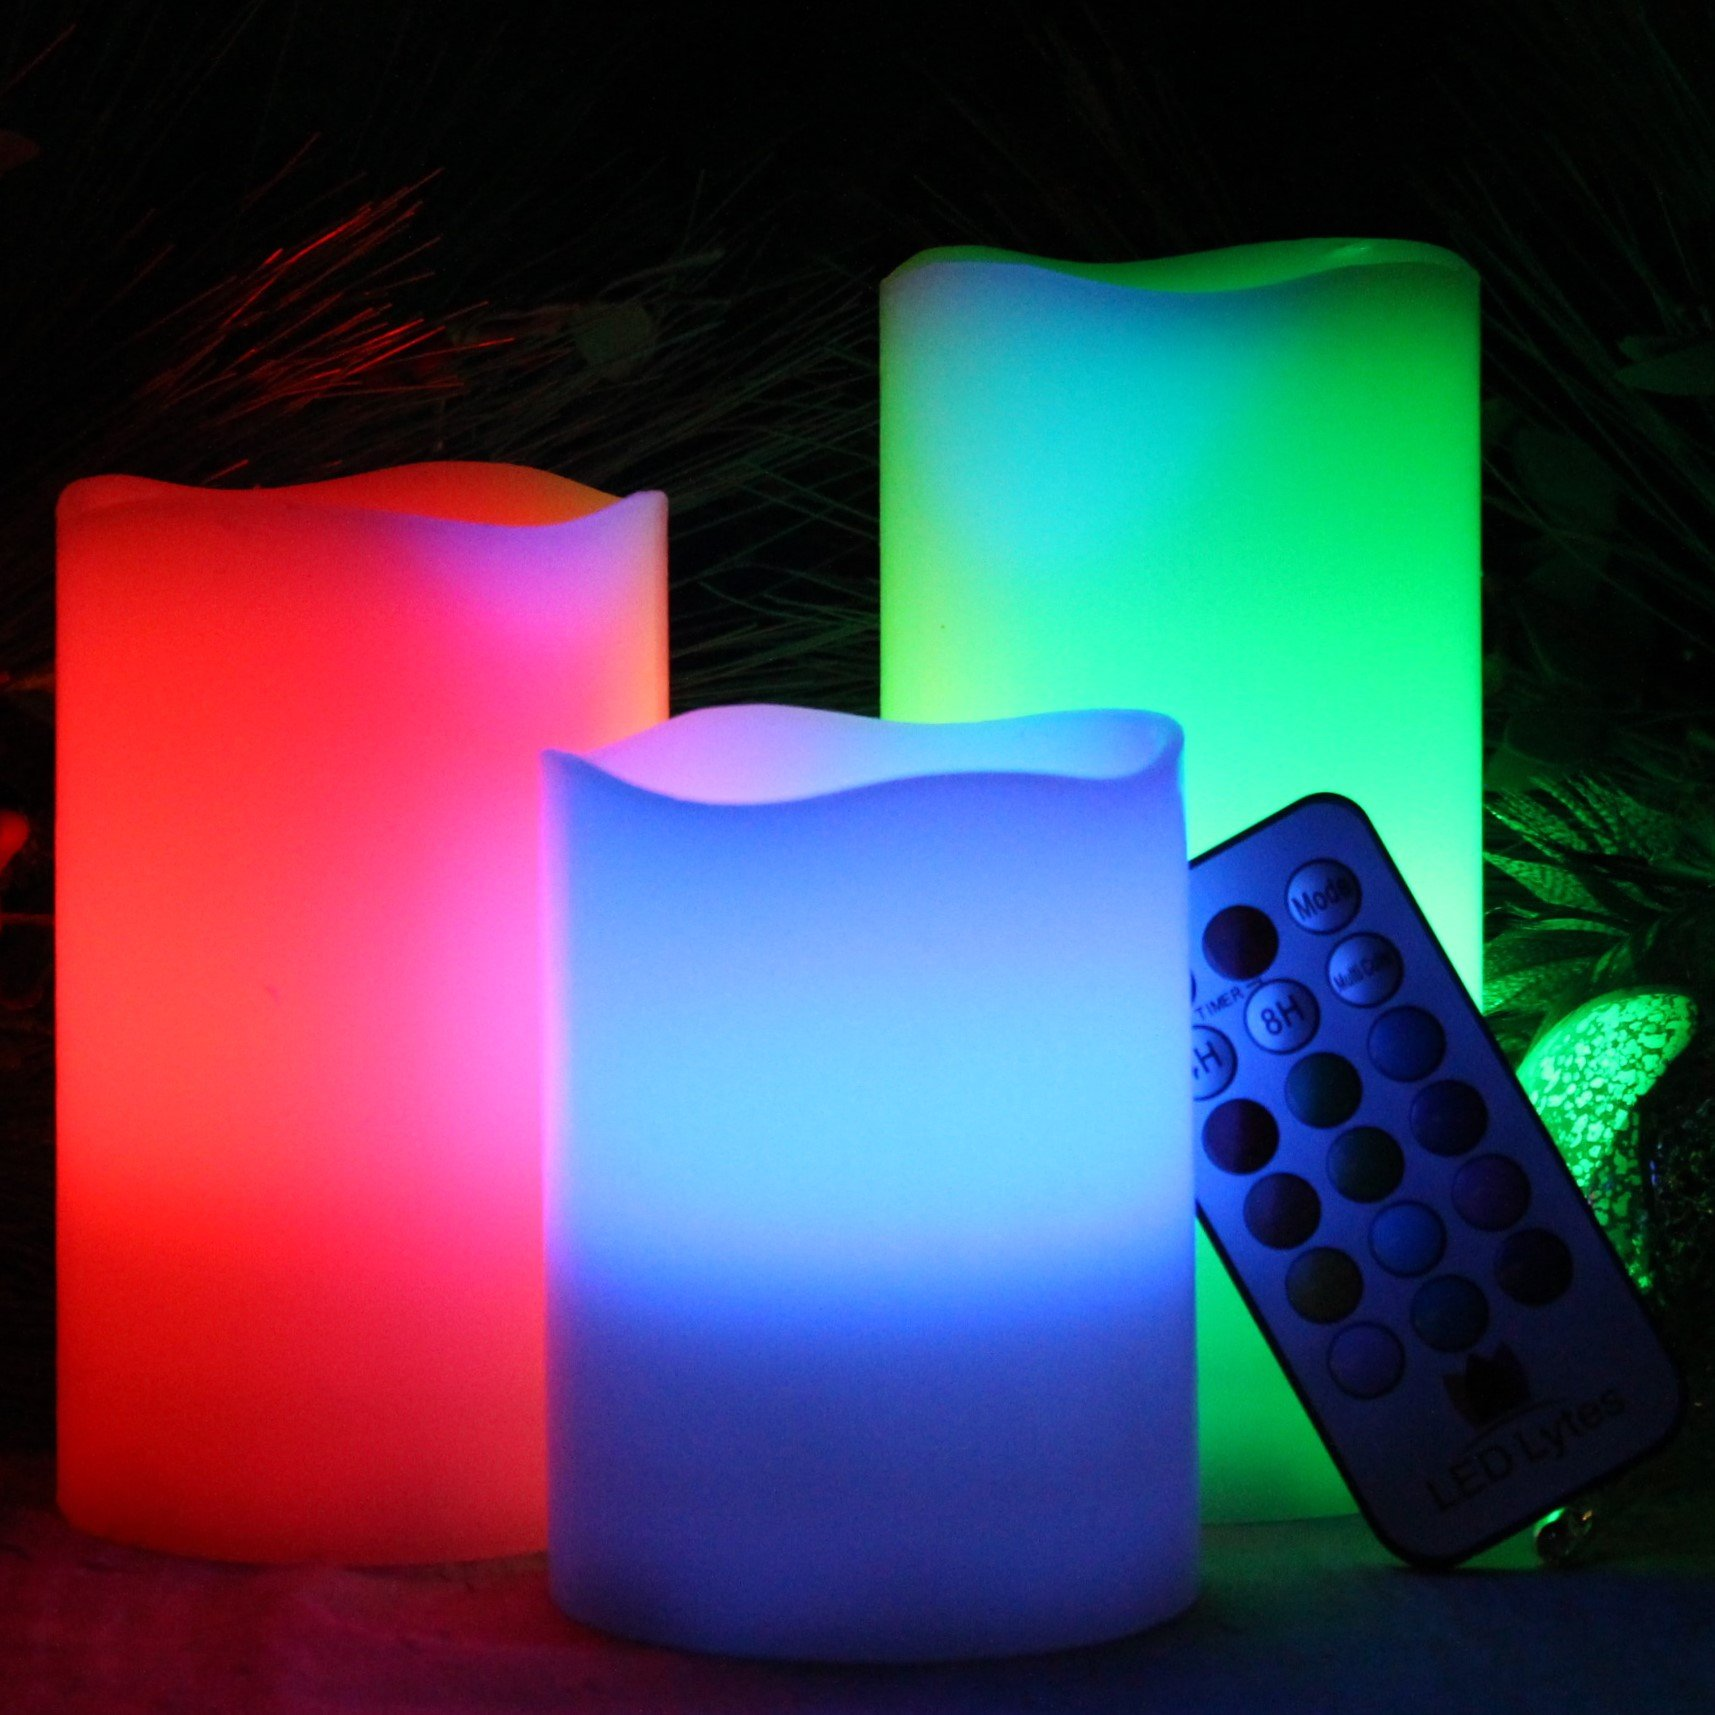 LED Lytes Flickering Flameless Candles - Battery Operated Candles Vanilla Scented Set of 3 Round Ivory Wax Flickering Multi Colored Flame, auto-Off Timer Remote Control Weddings Gifts by LED Lytes (Image #2)